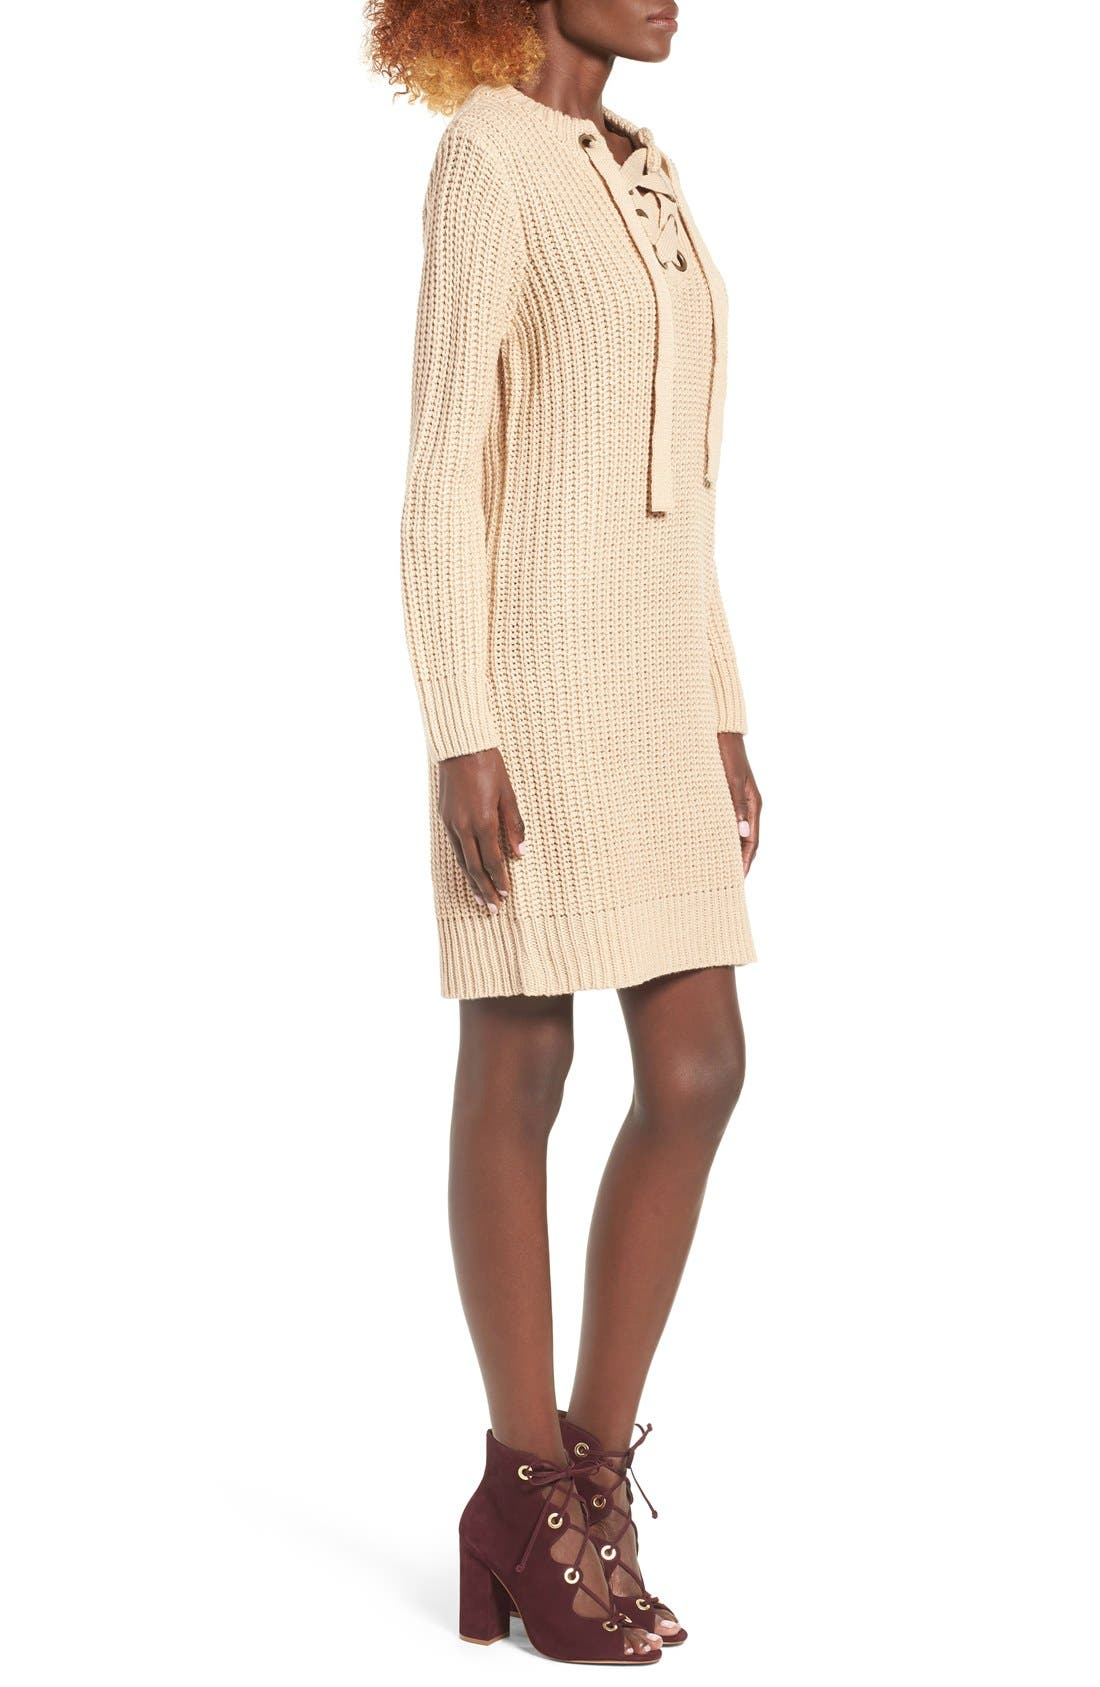 MOON RIVER, Lace-Up Sweater Dress, Alternate thumbnail 7, color, 230